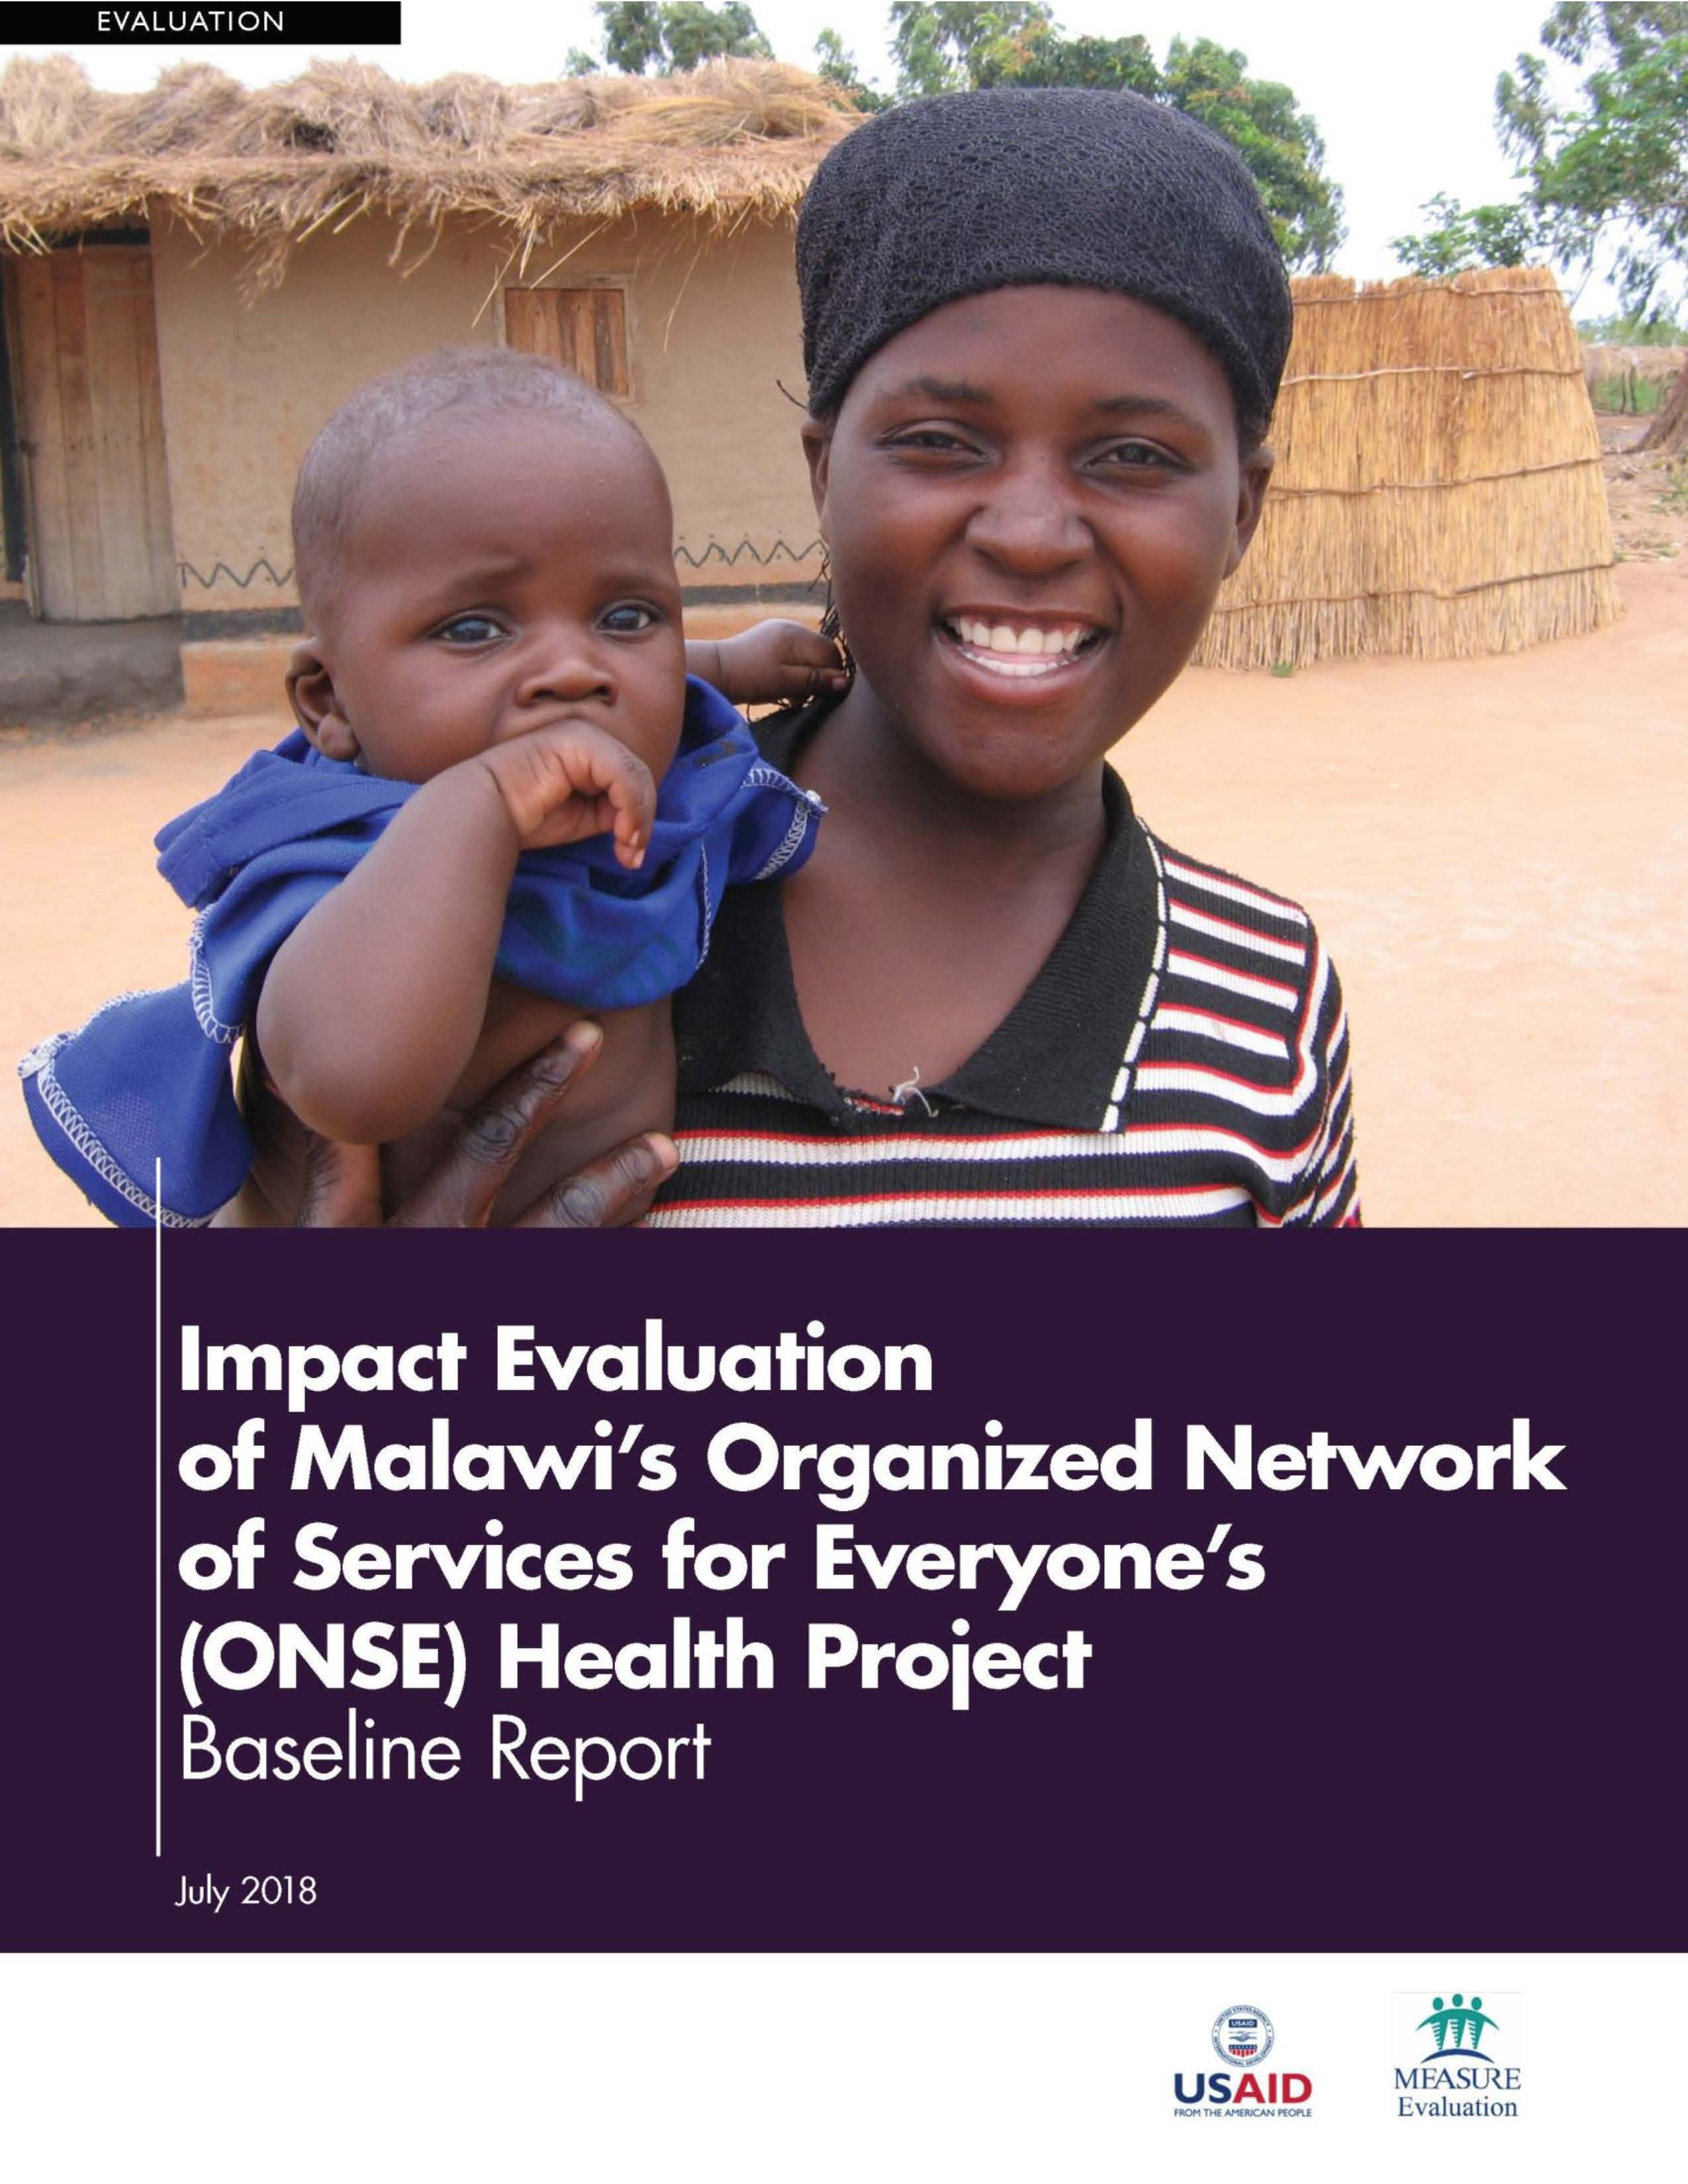 Impact Evaluation of Malawi's Organized Network of Services for Everyone's (ONSE) Health Project: Baseline Report